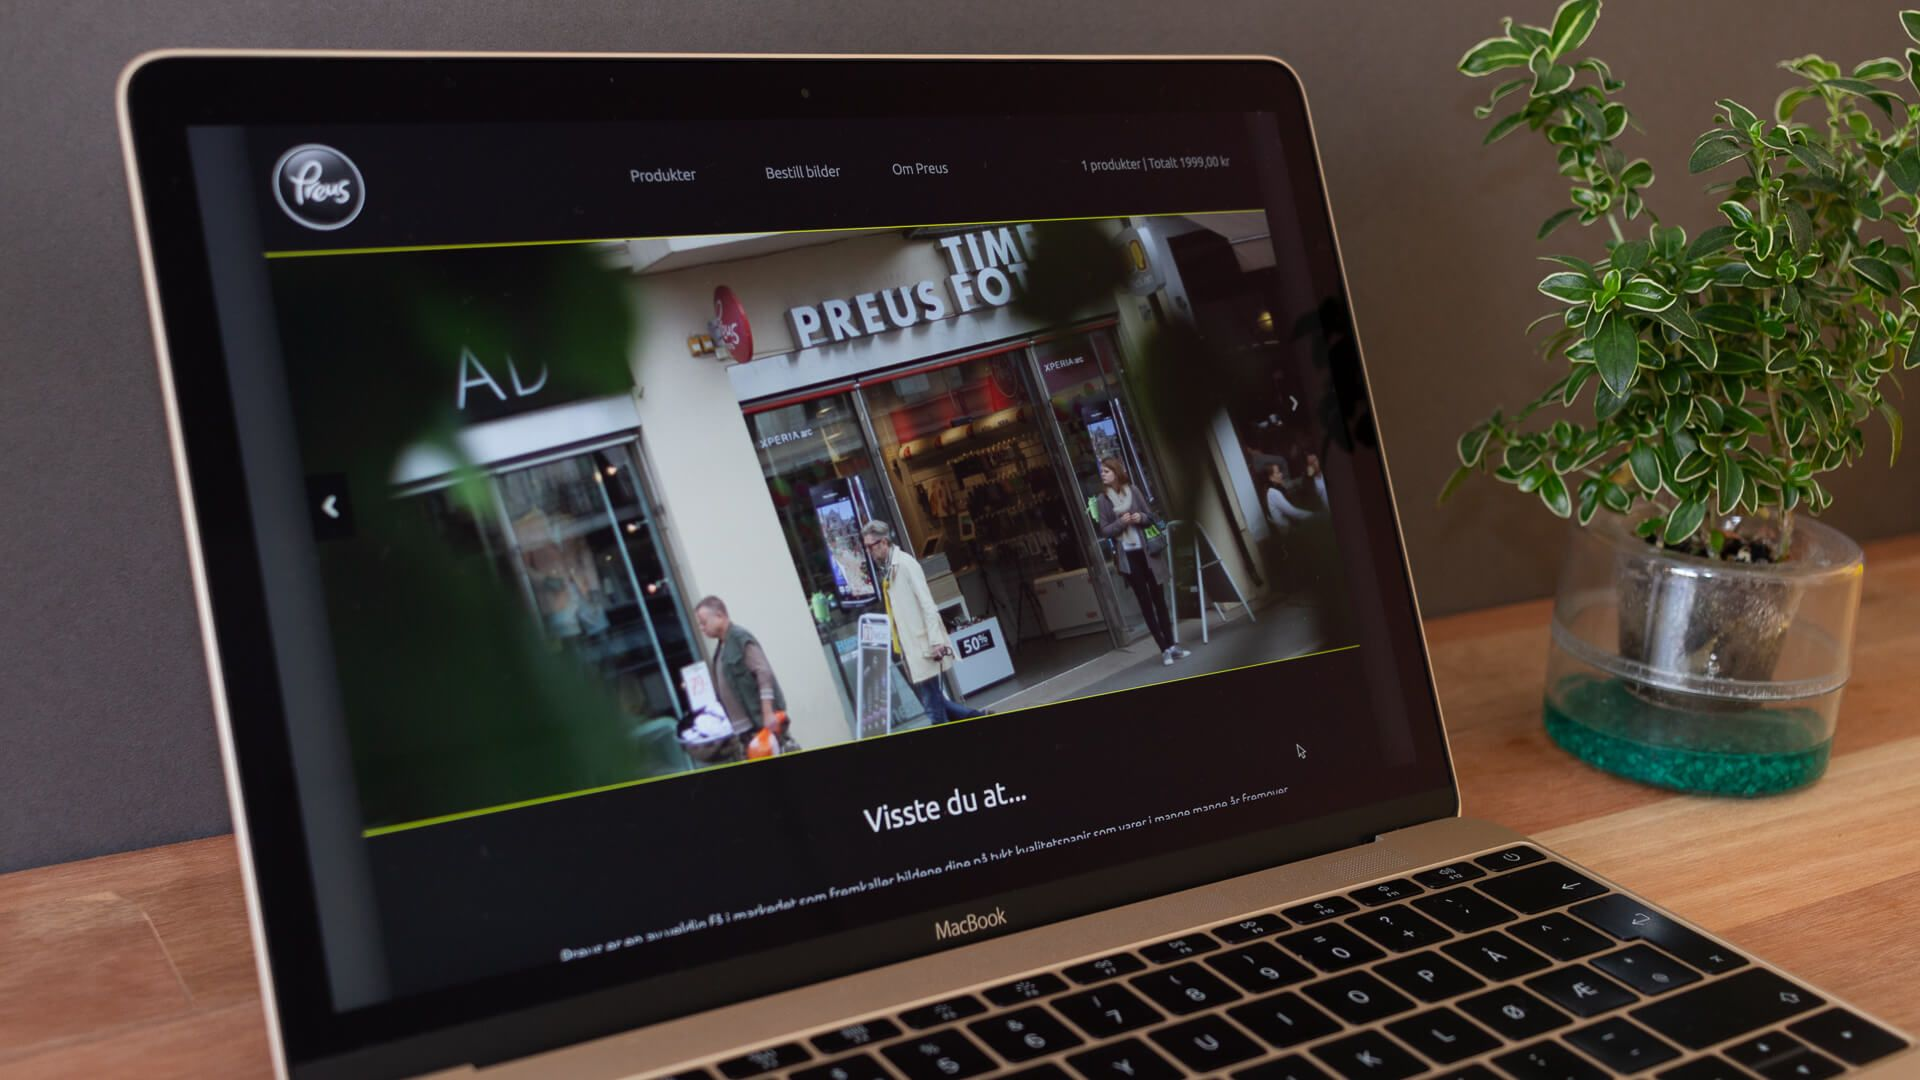 Home page header with slide show for campaigns and image of one of the store fronts.